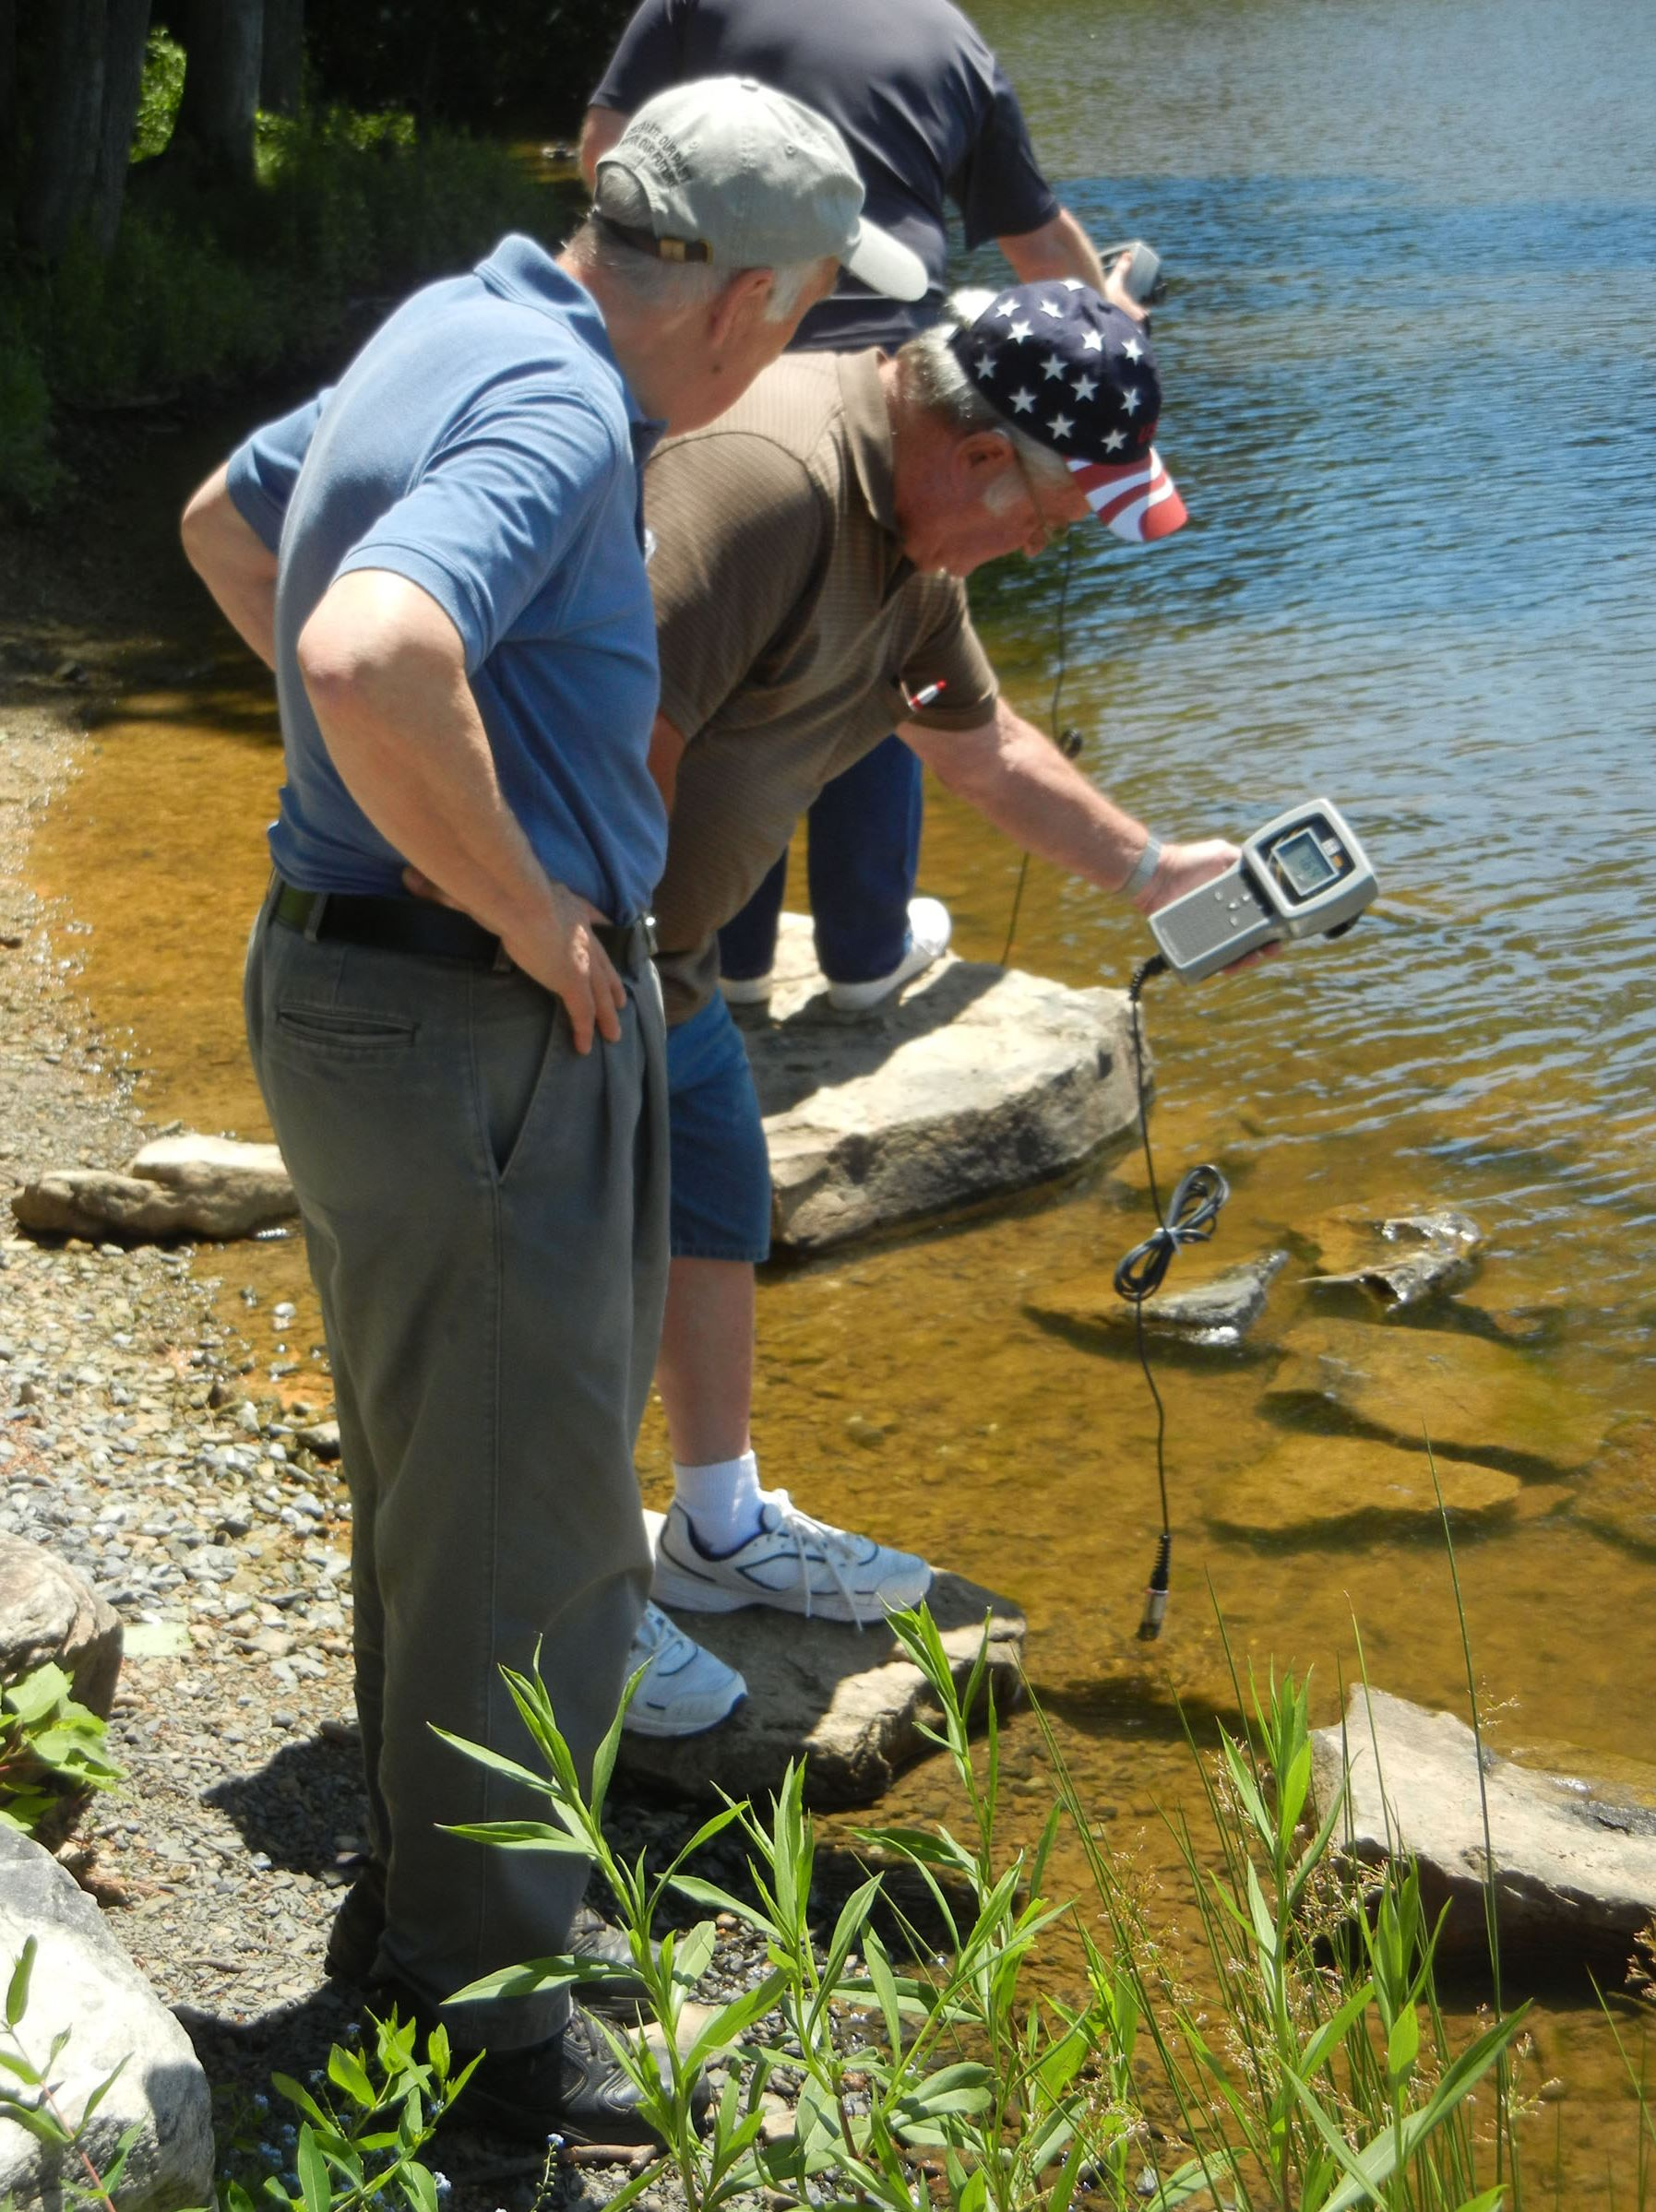 seniors0711_environment Senior Environment Corps volunteers Terry Boyer, left, and Joe Ryan check water quality samples from Sweet Arrow Lake in Schuylkill County.